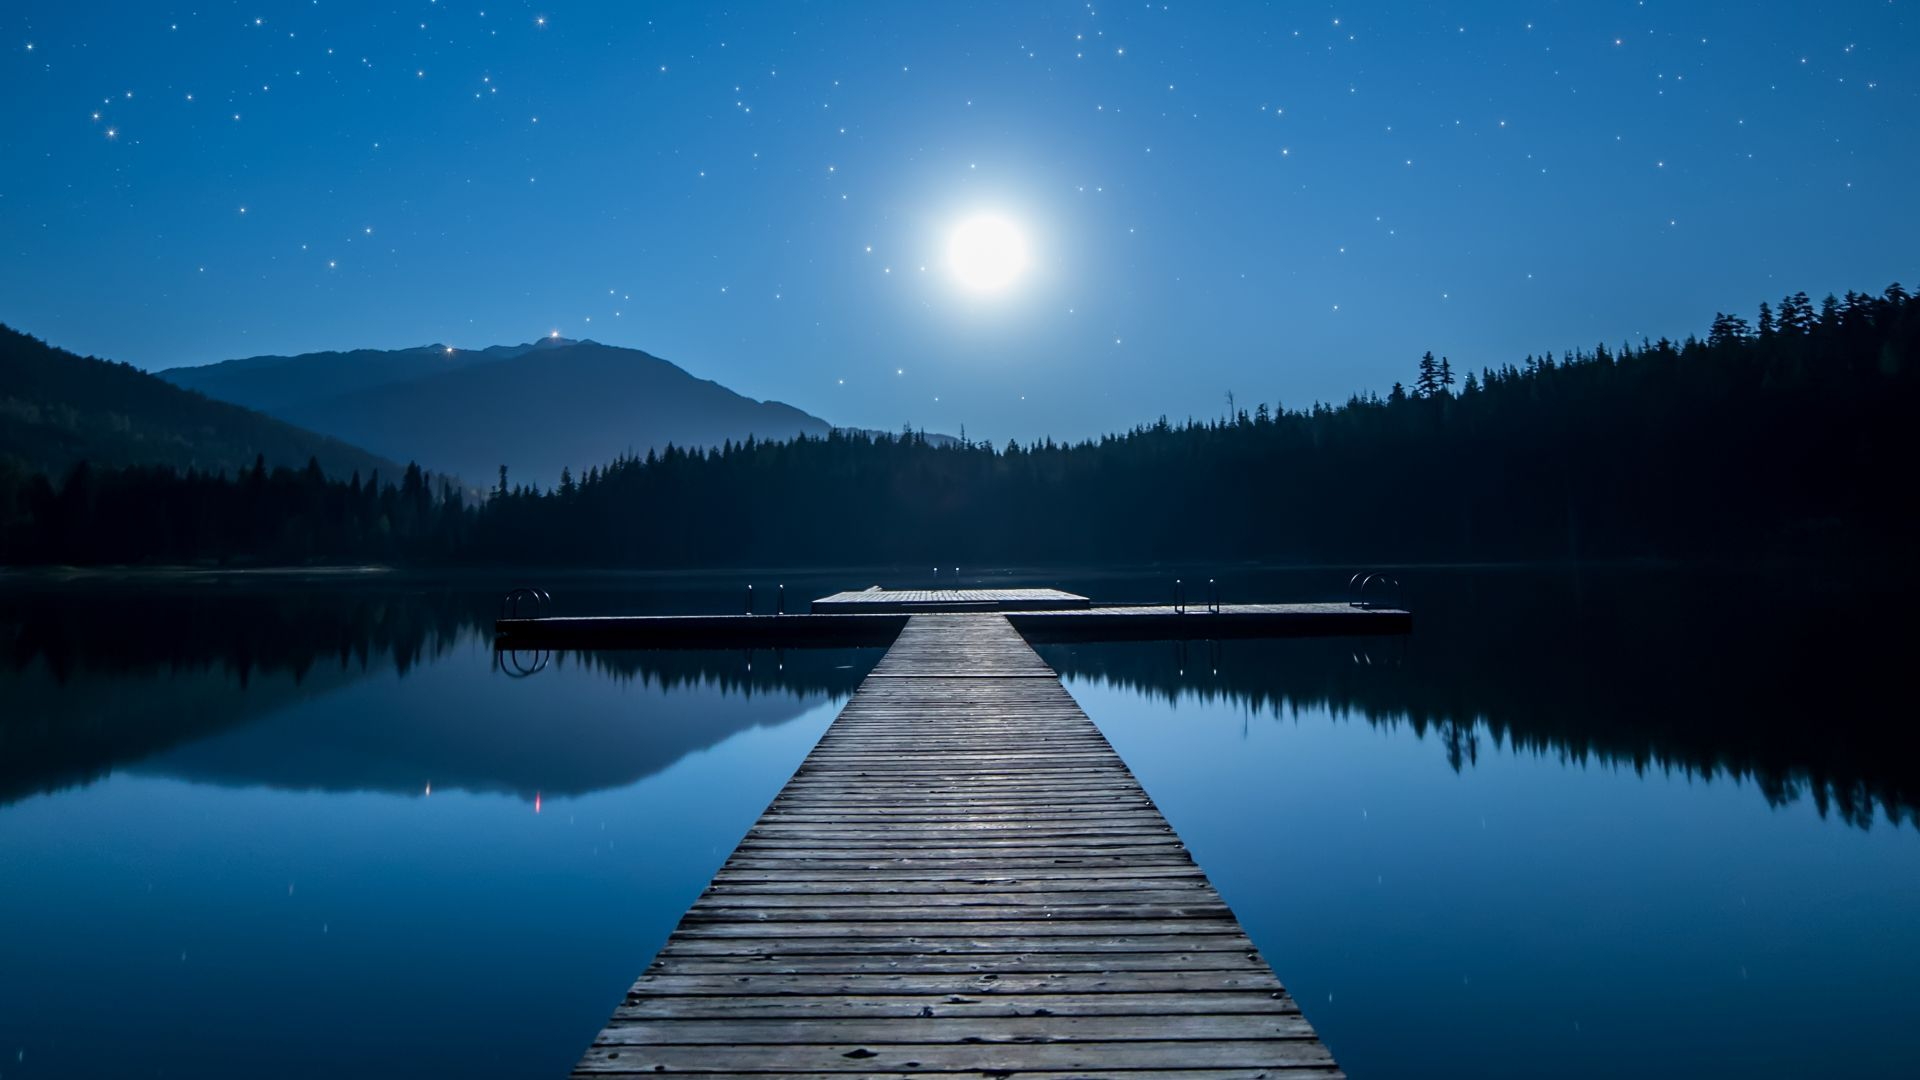 Download wallpapers of Lake, Dock, Moon, Mountains